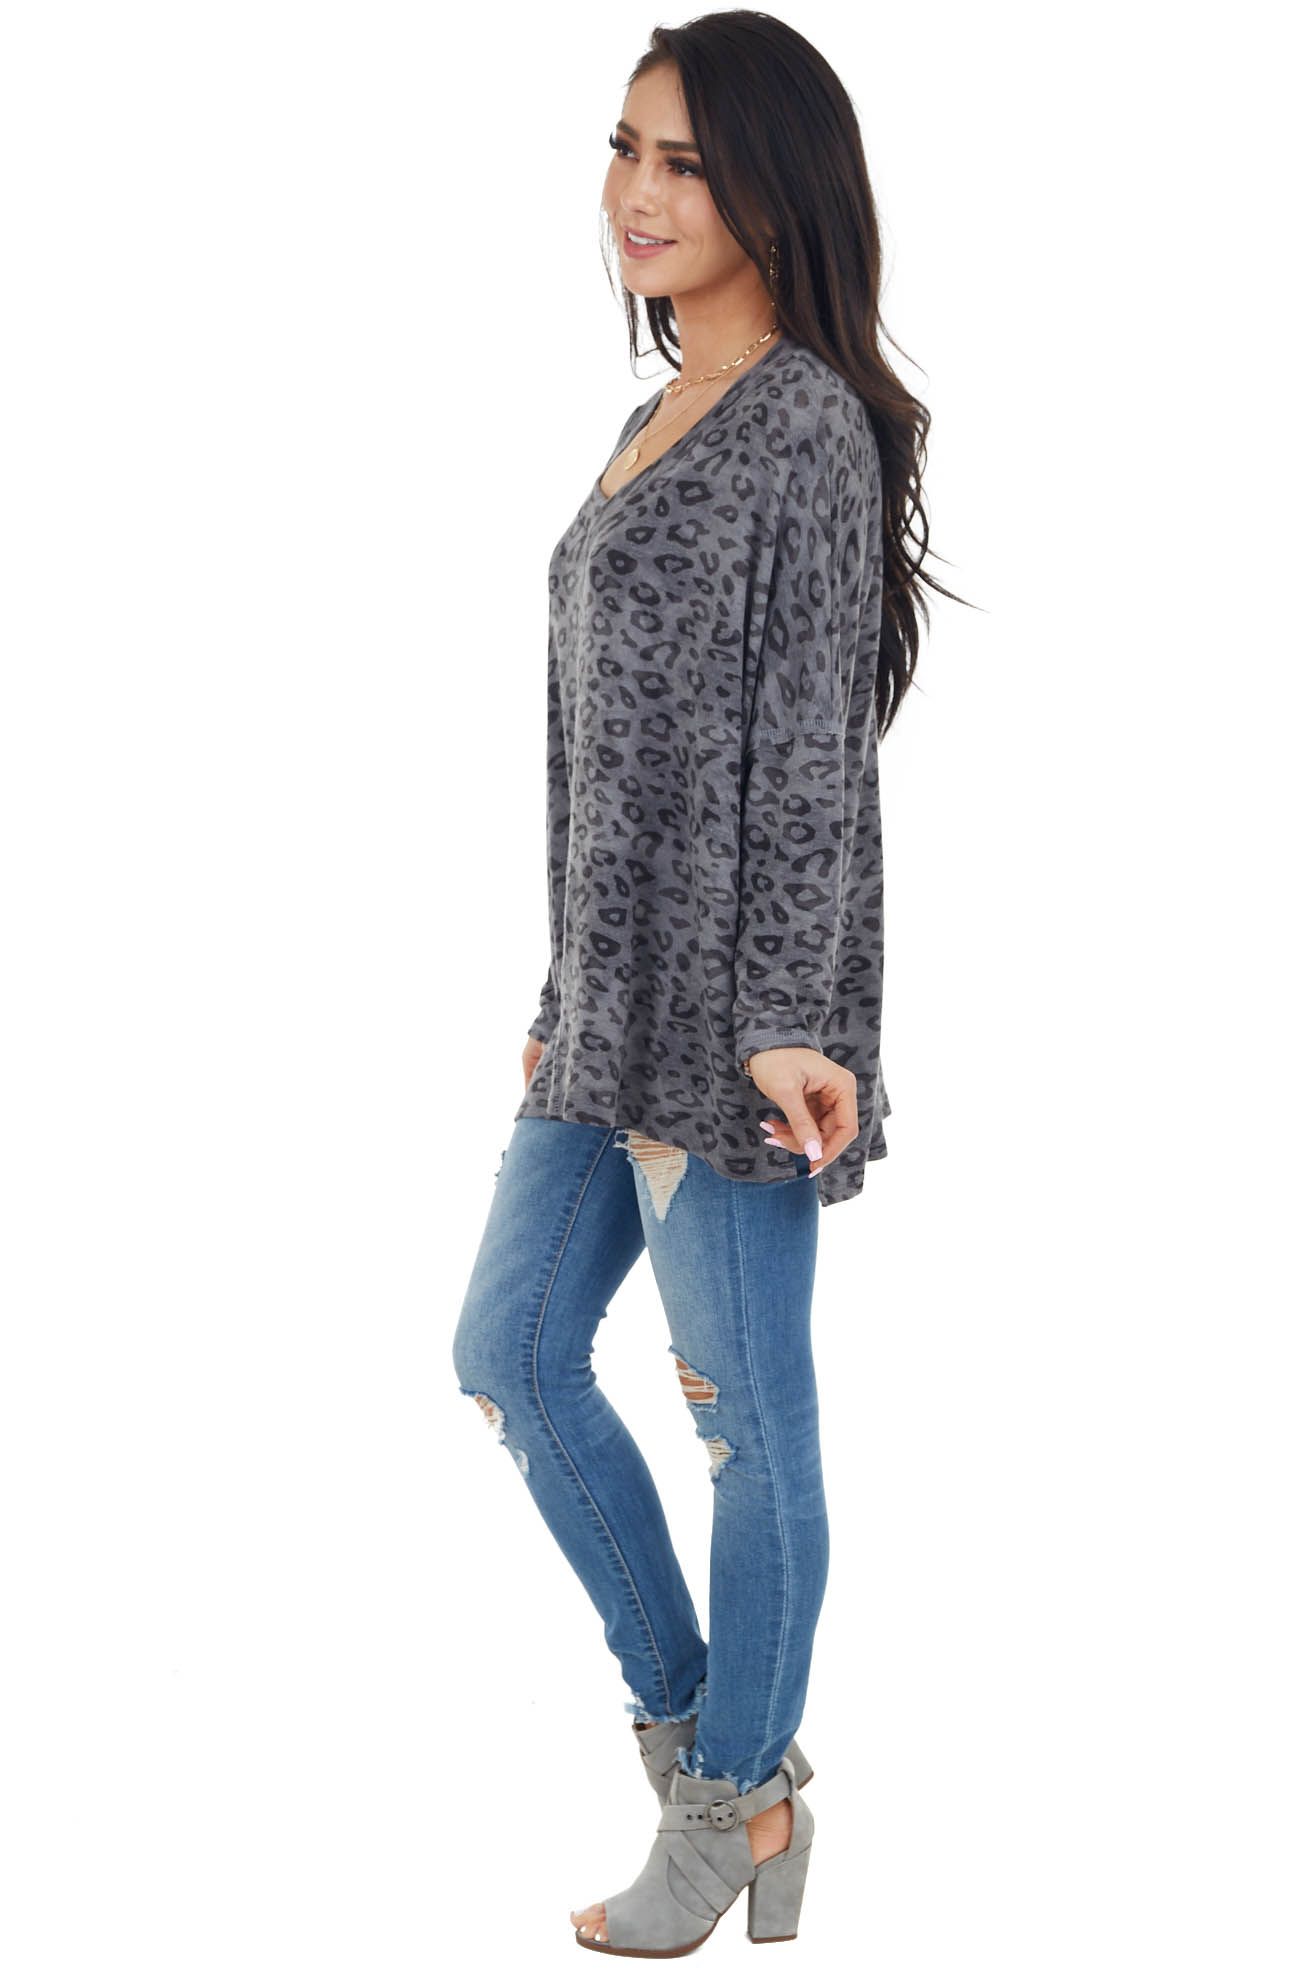 Stone Grey Leopard Print Oversized Top with Long Sleeves